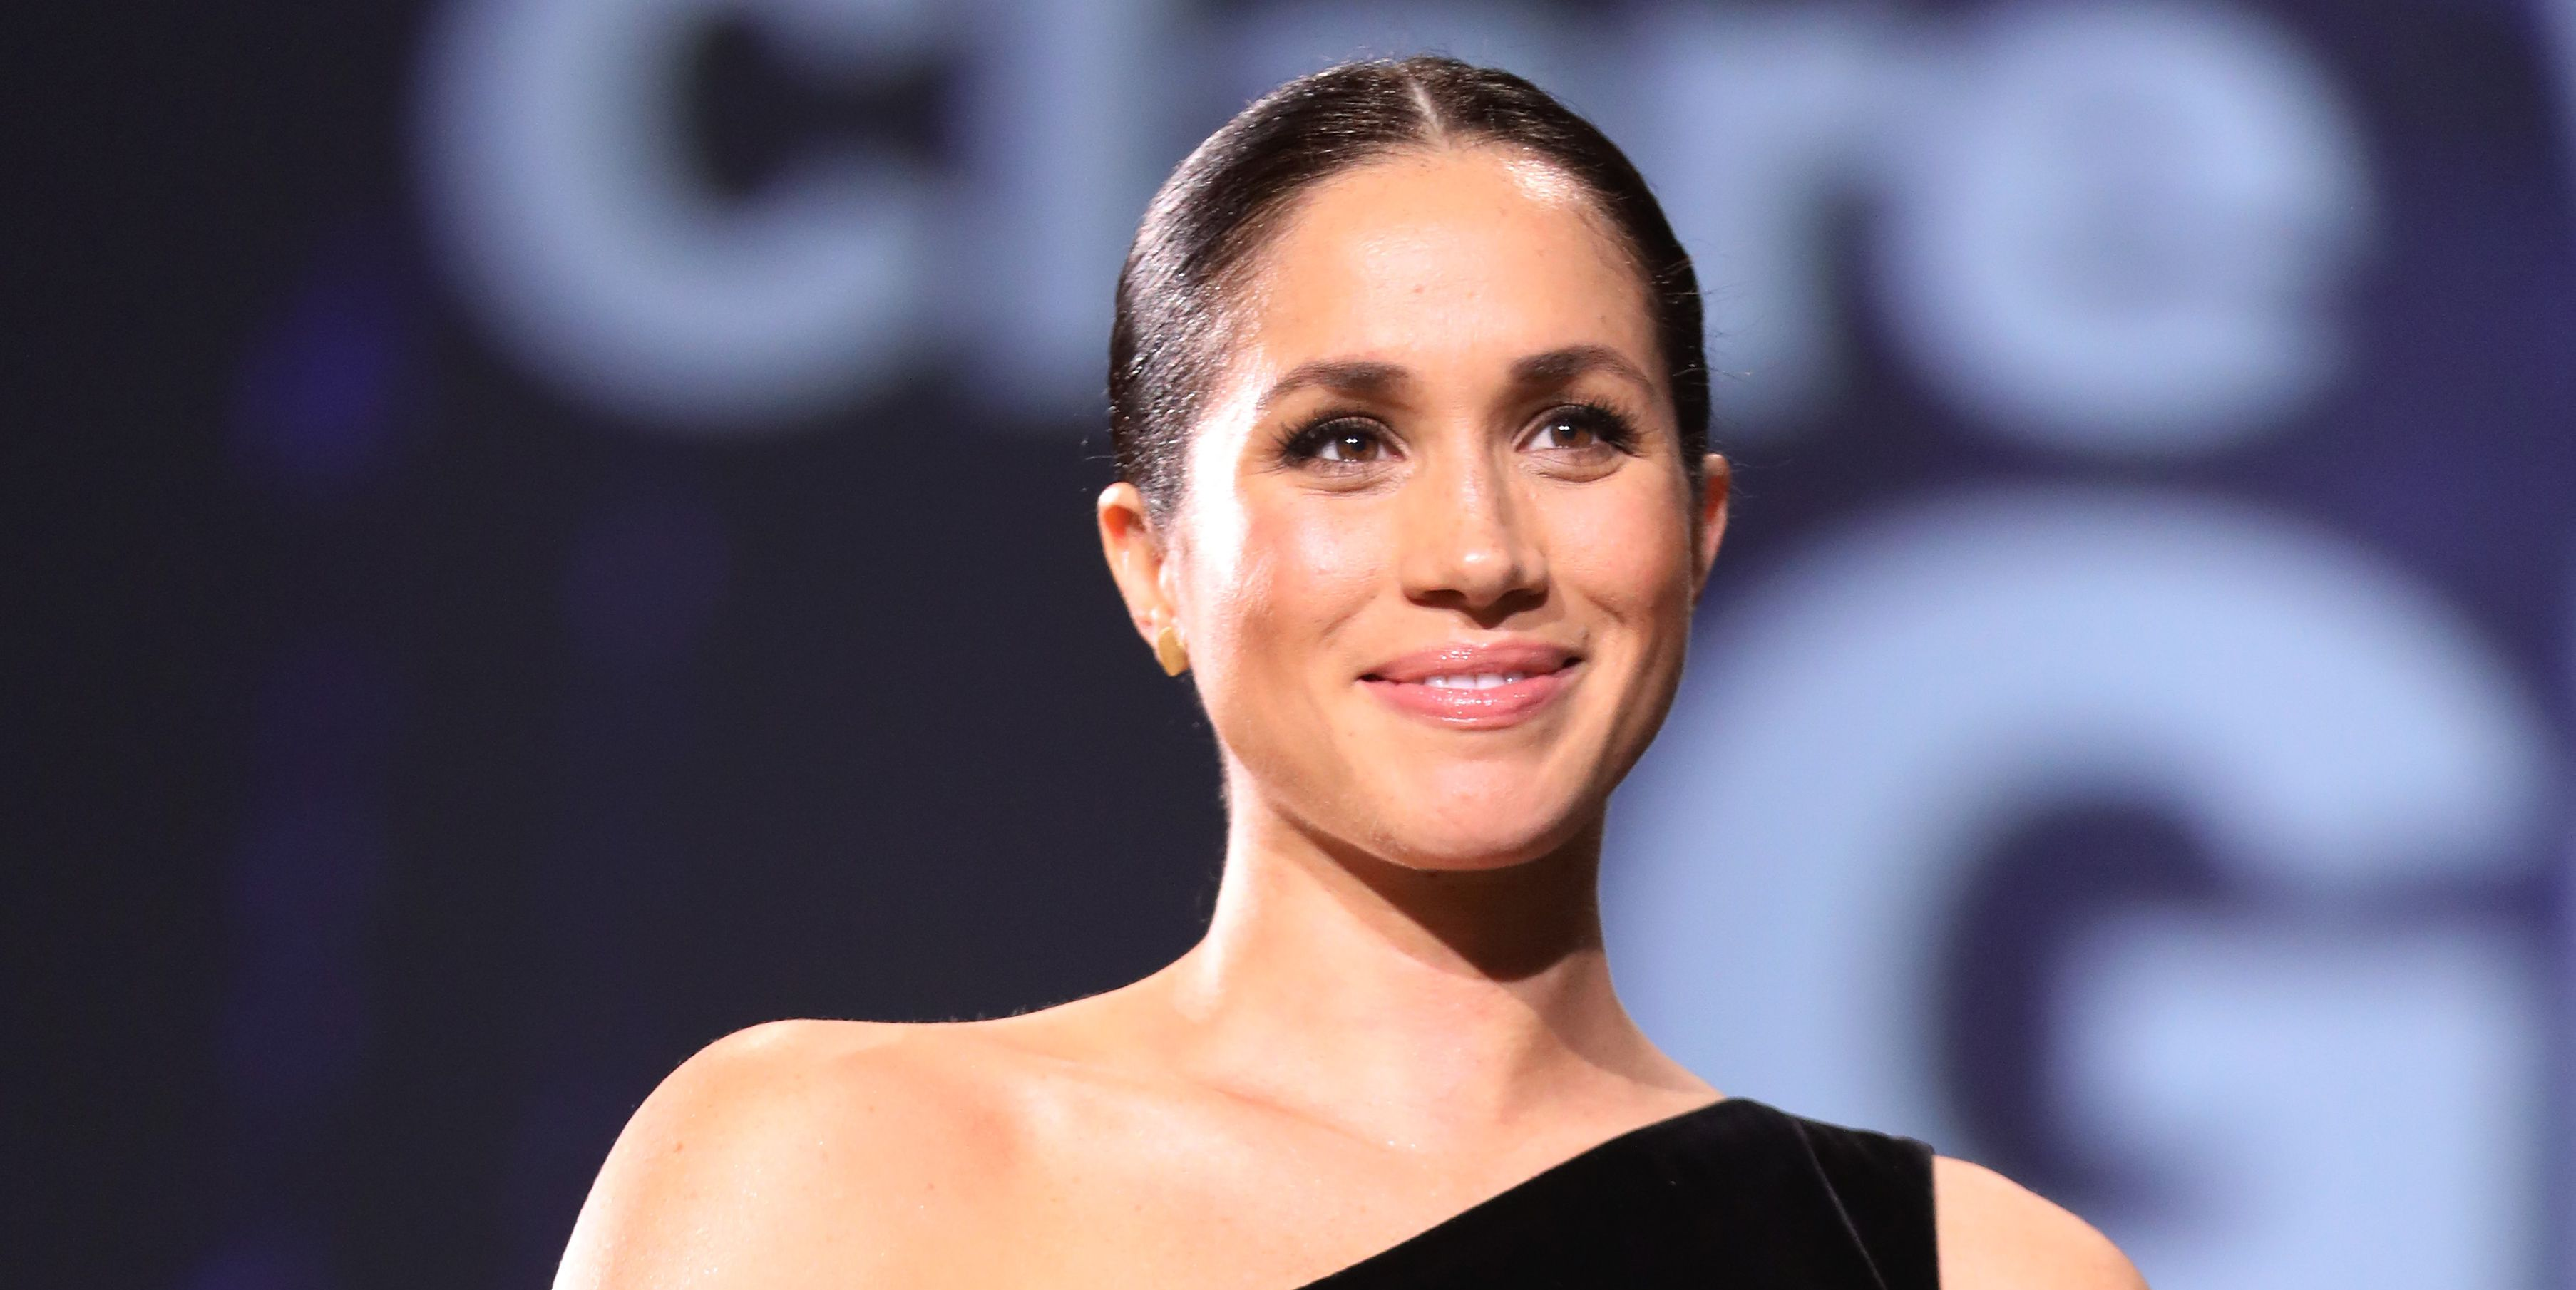 Meghan Markle Just Broke Royal Protocol In A Very Sneaky